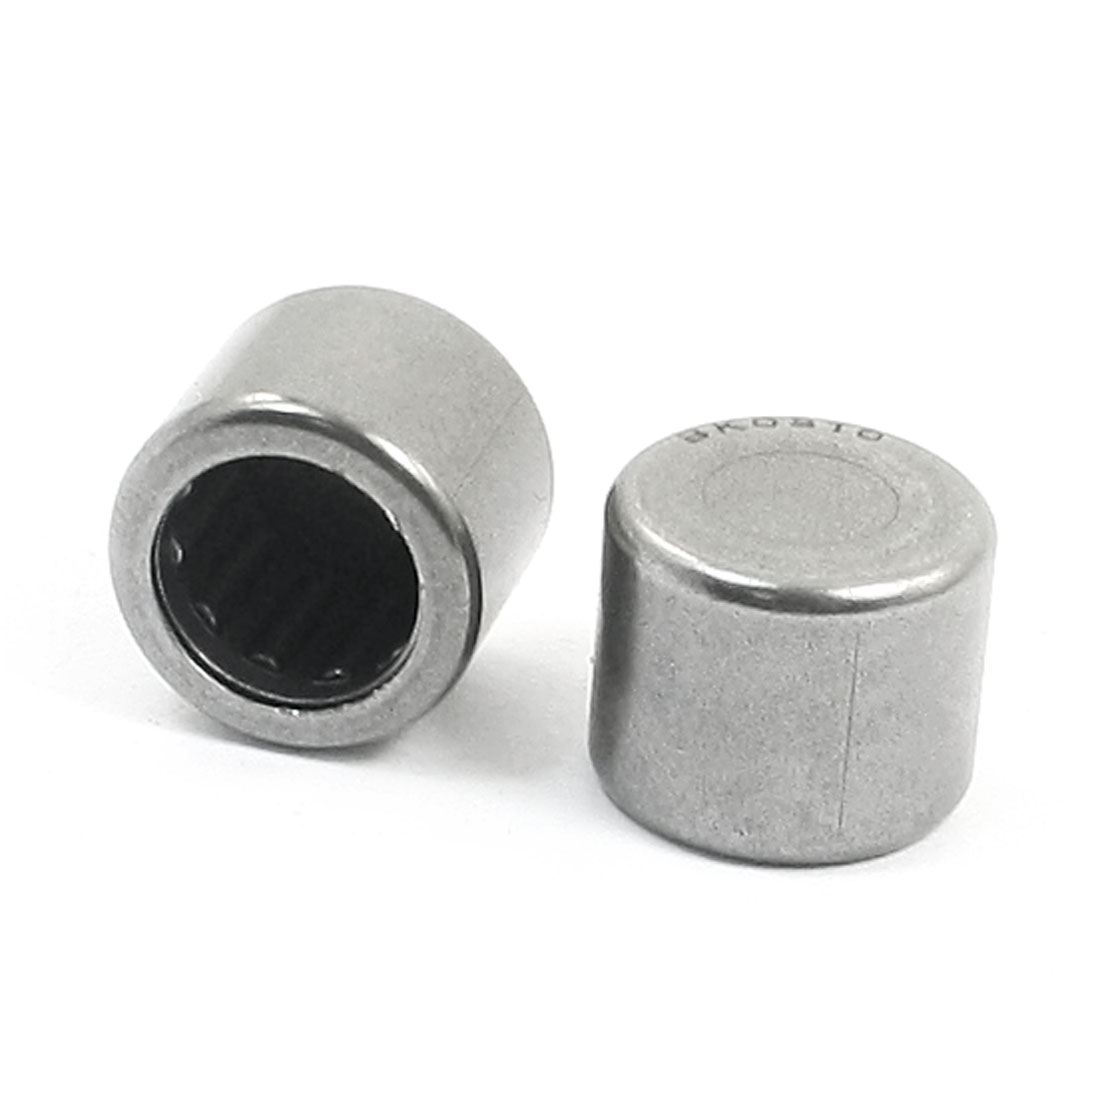 2Pcs KB0810 One Closed End Drawn Cup Silver Gray Needle Roller Bearing 8mm x 12mm x 10mm